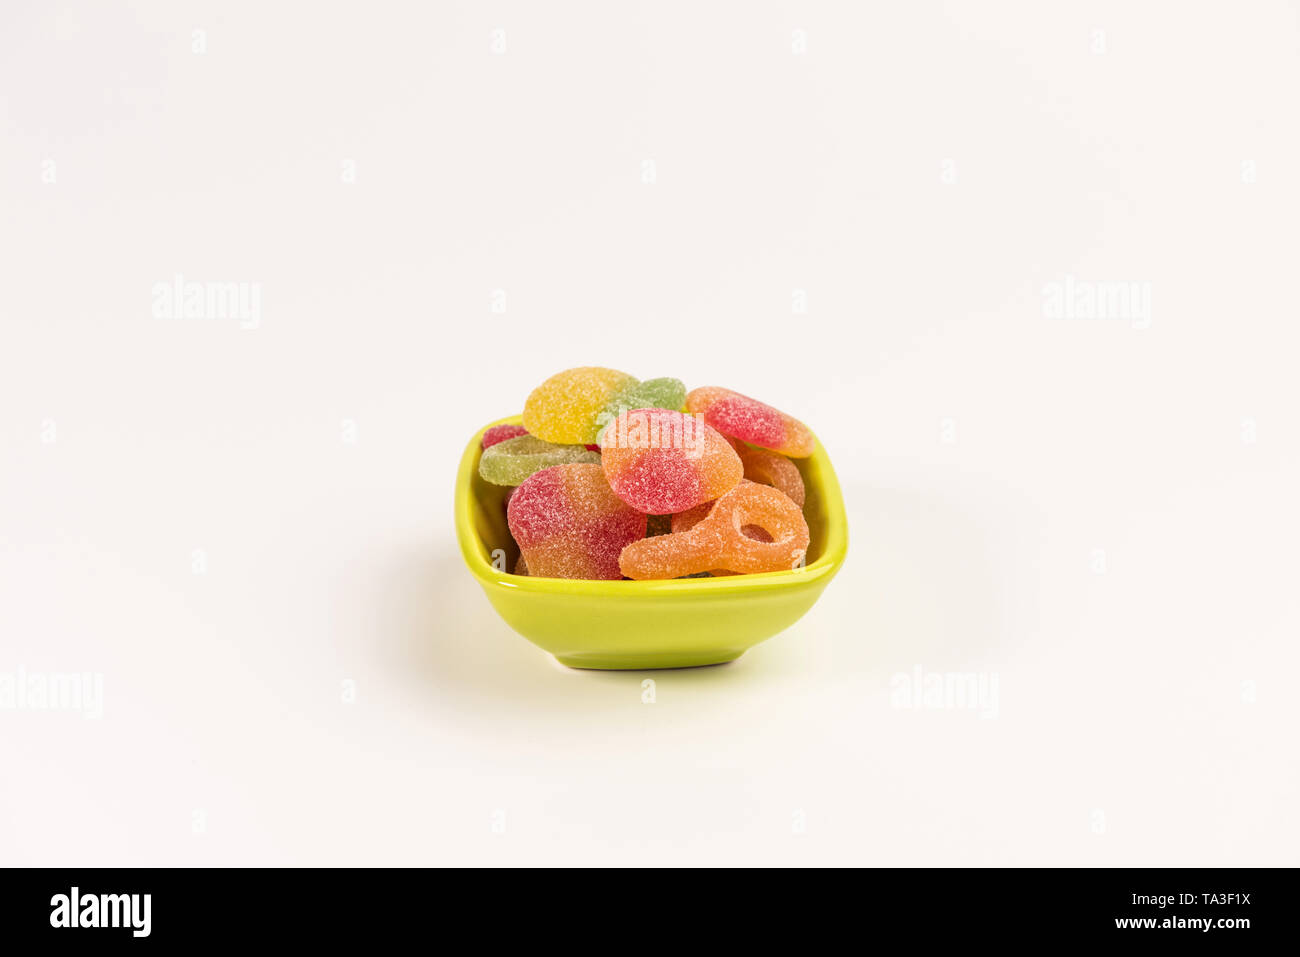 Small bowl with gummy candies isolated on white background. - Stock Image